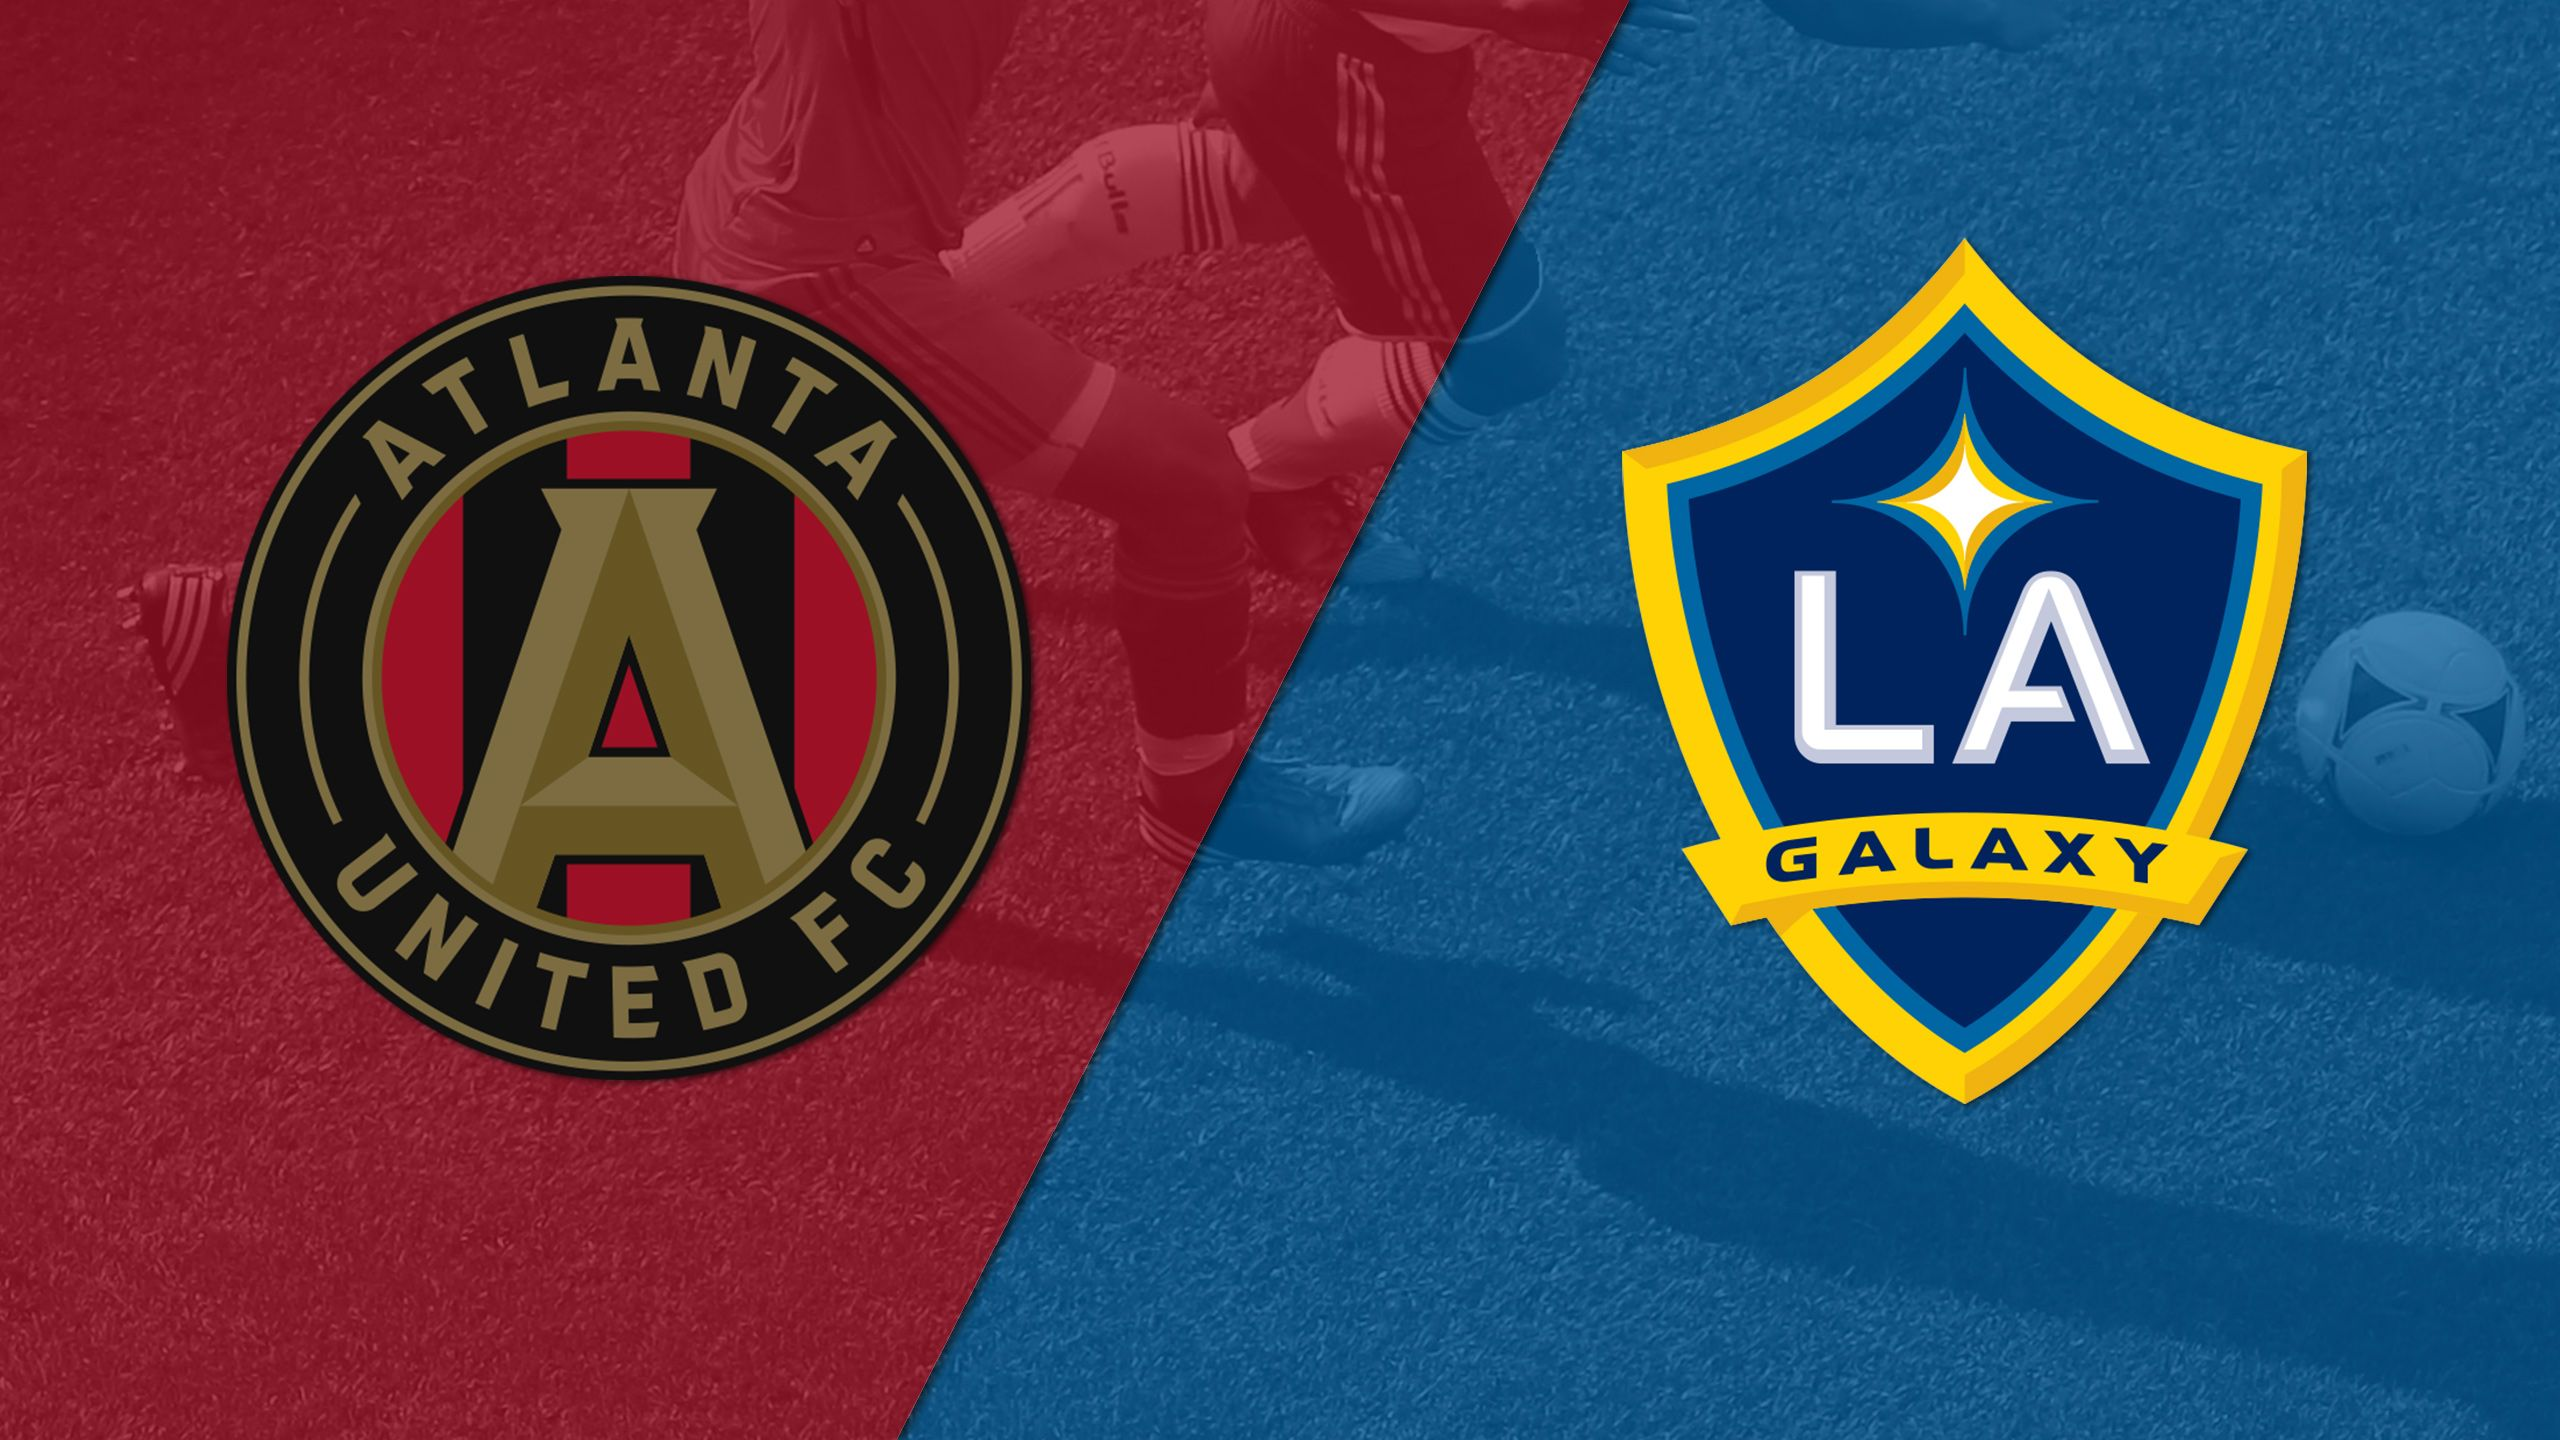 Atlanta United FC vs. LA Galaxy